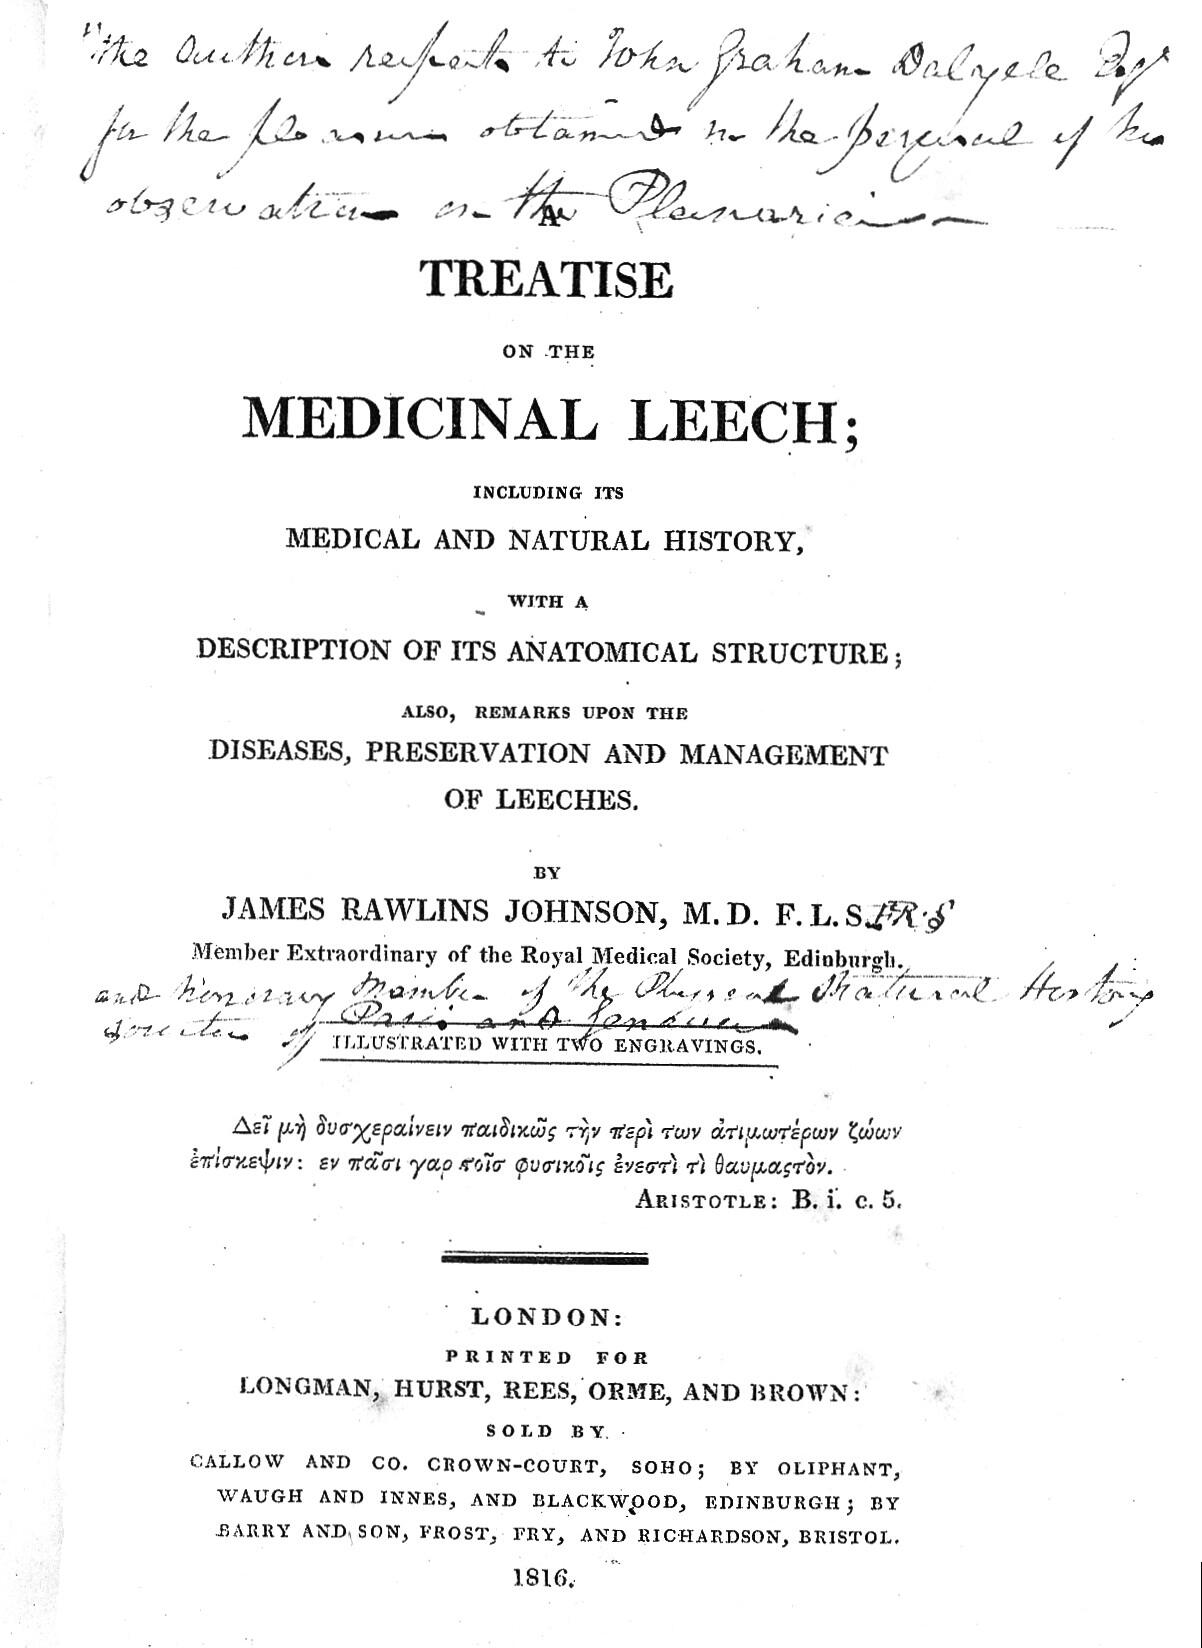 Treatise on the medicinal leech  | Wellcome Collection